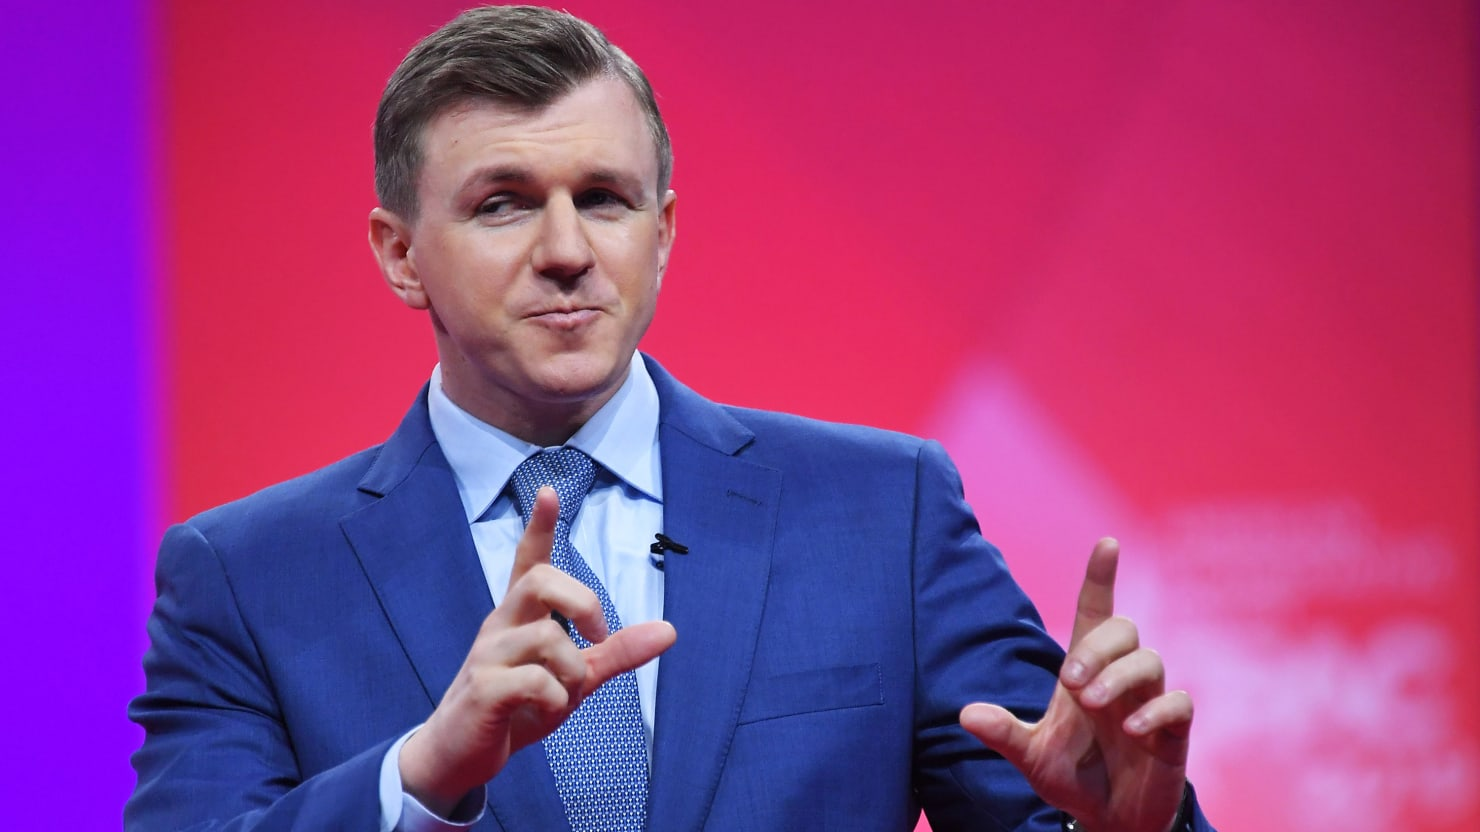 James O'Keefe's CNN Sting Fizzles